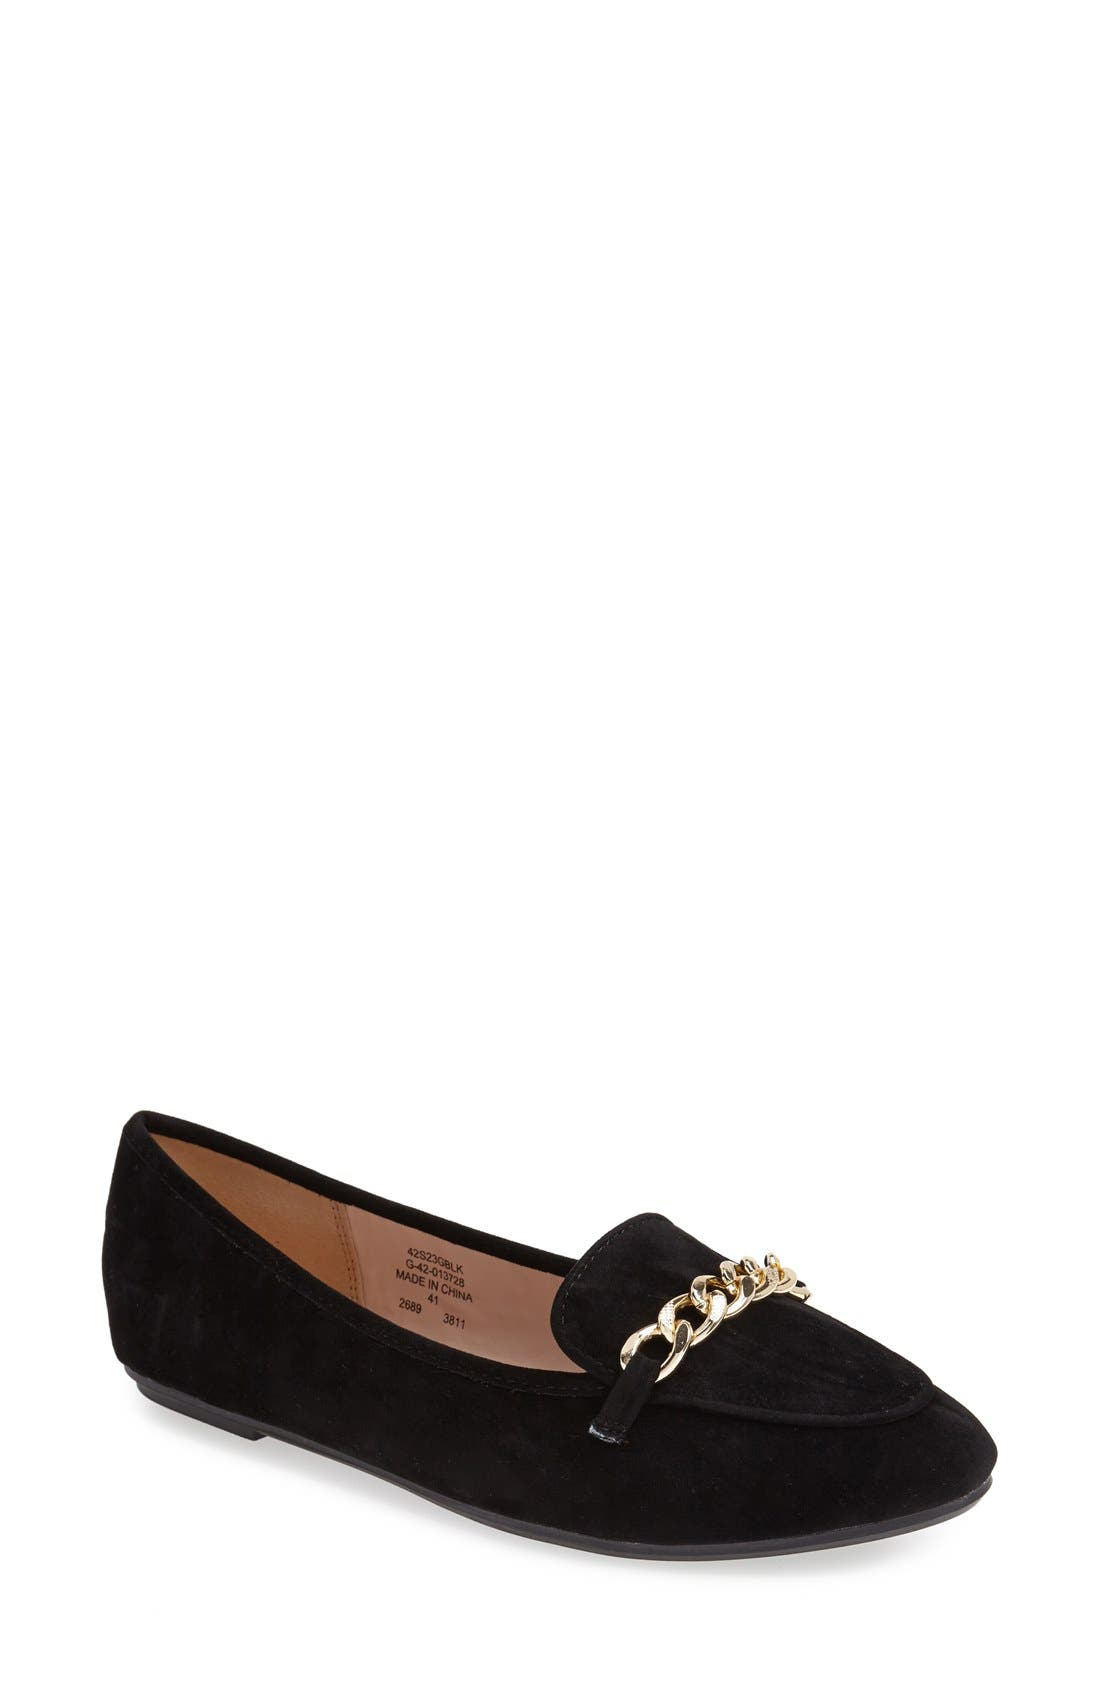 Alternate Image 1 Selected - Topshop 'Sovereign' Chain Flat (Women)